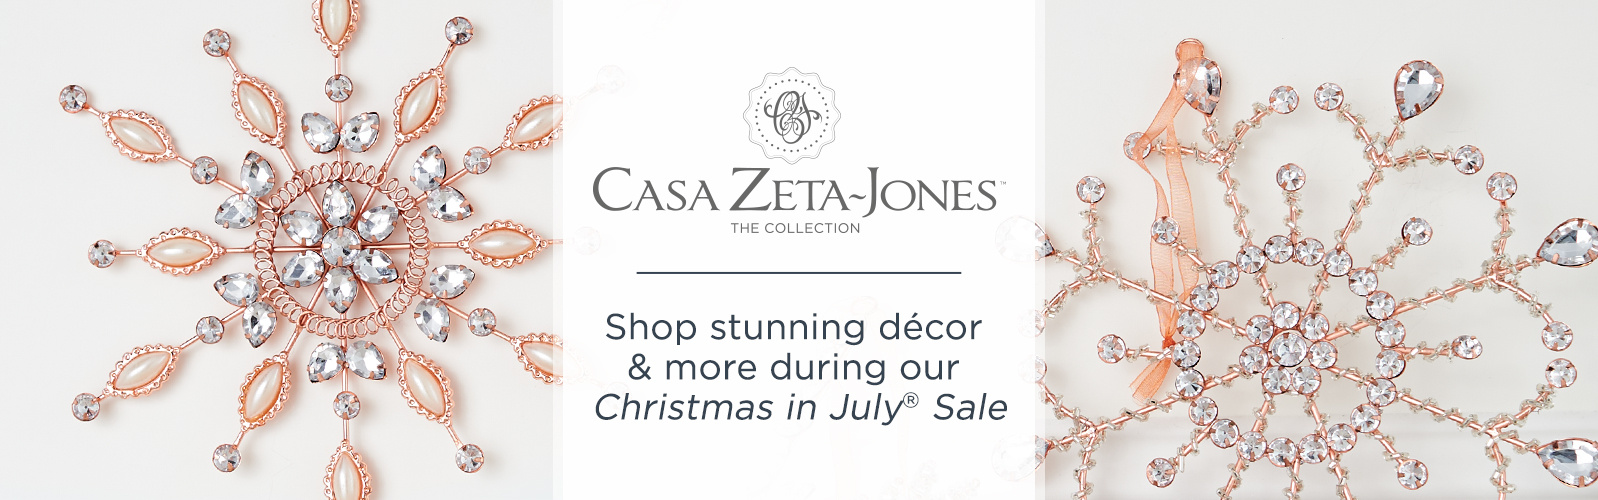 Casa Zeta-Jones. Shop stunning décor & more during our Christmas in July® Sale